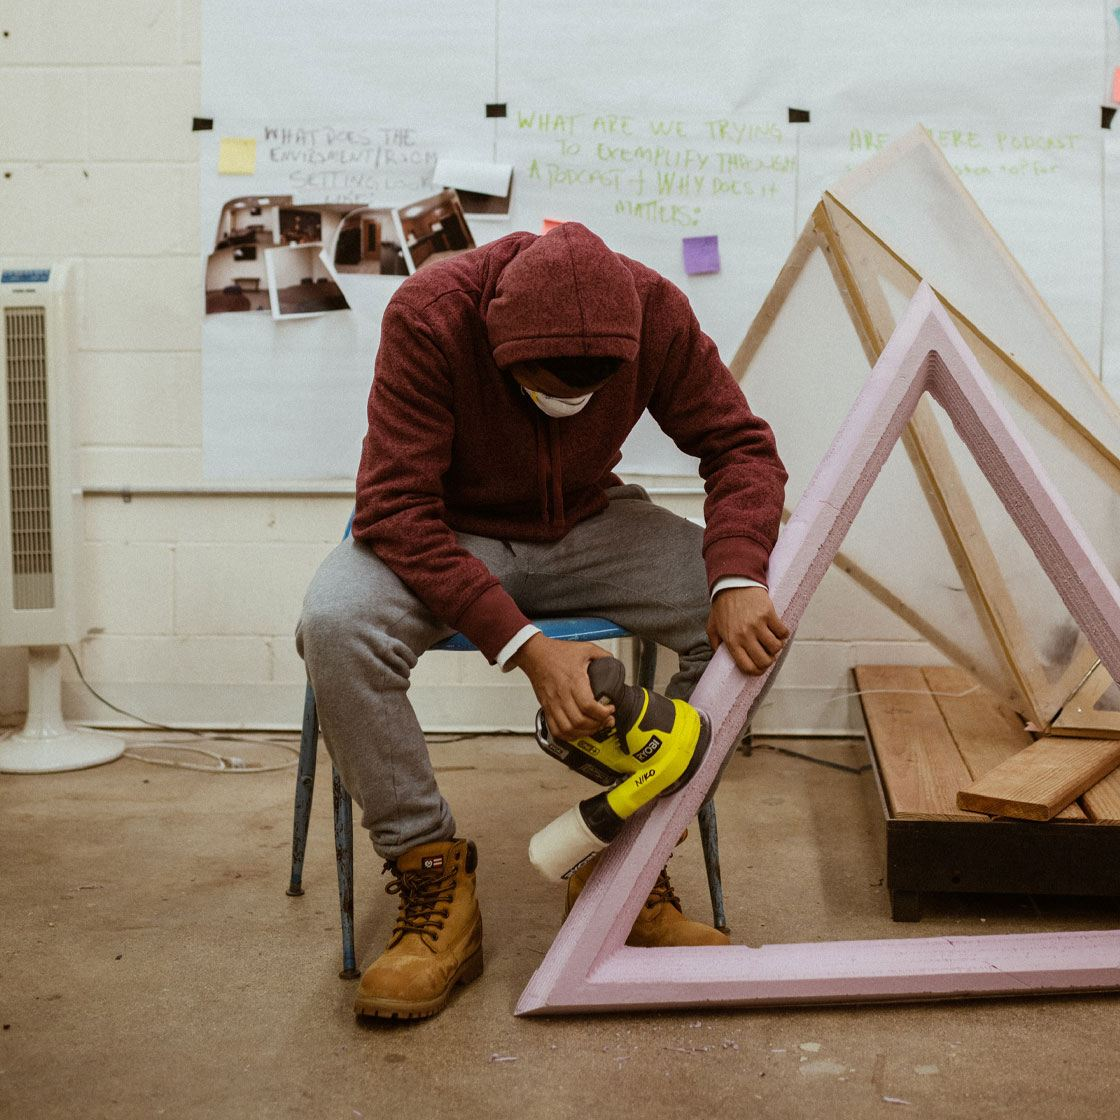 Someone working on a styrofoam pyramidal shaped sculpture